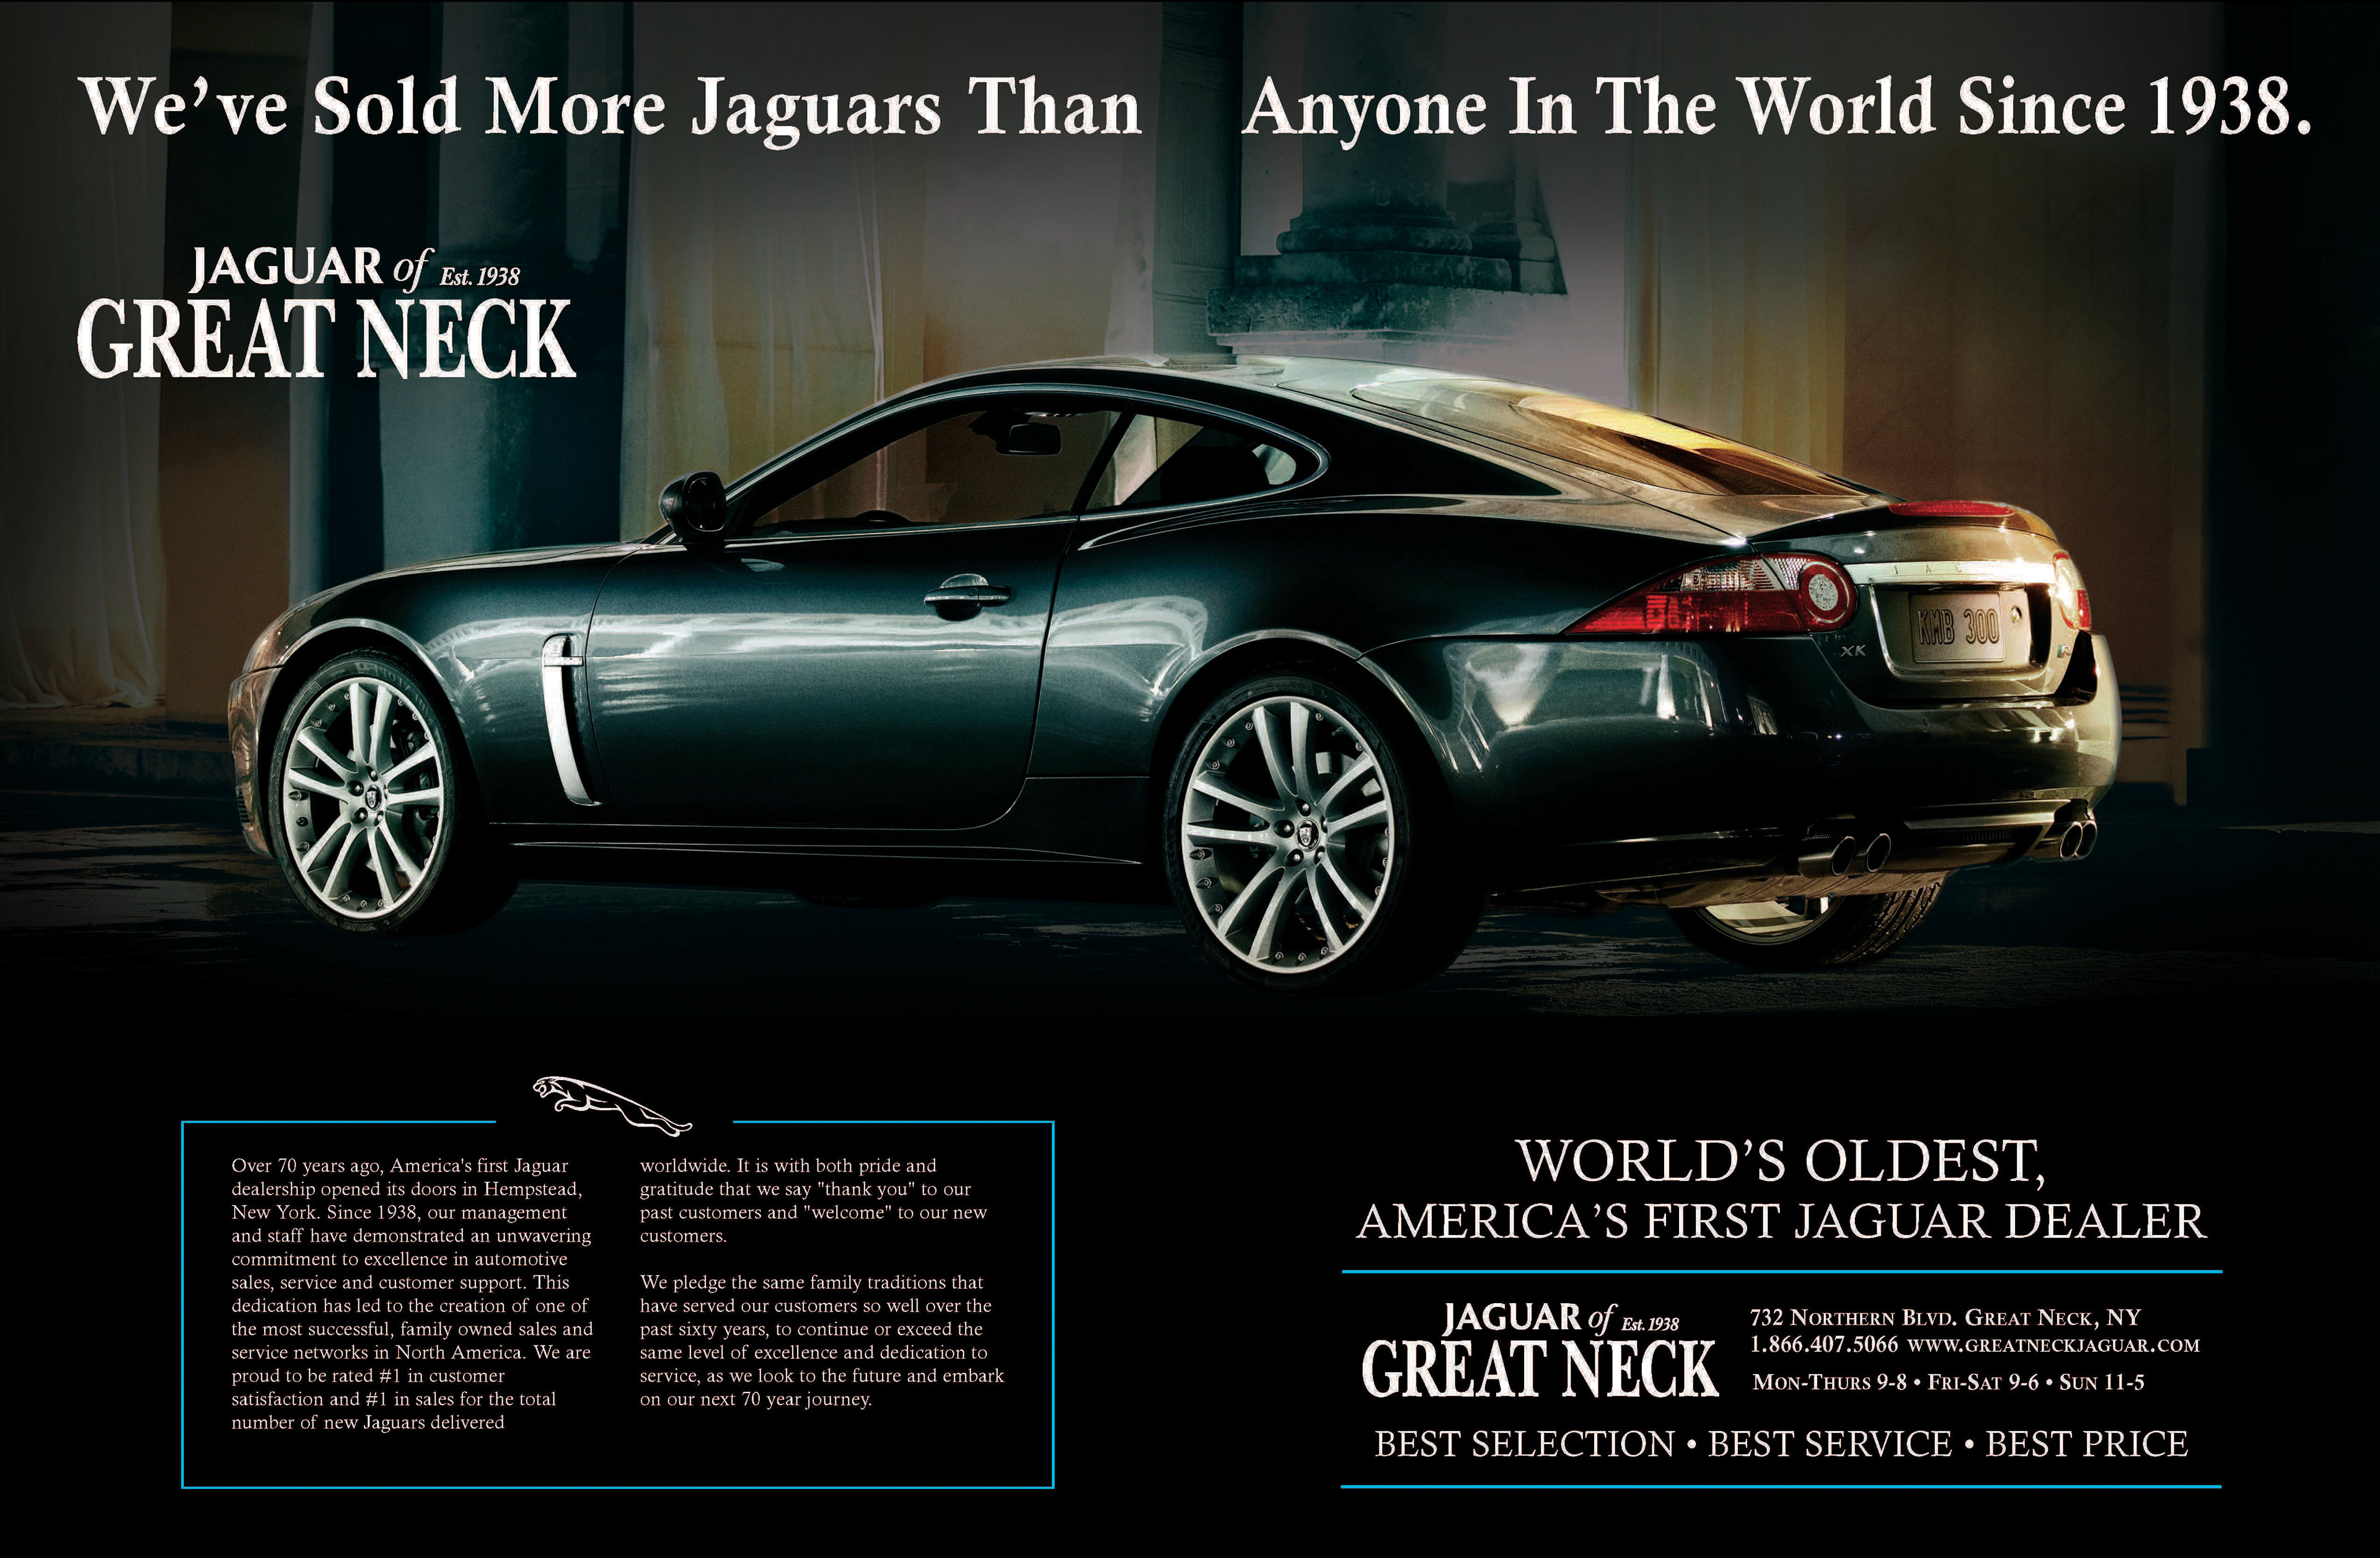 Over 70 Years Ago America S First Jaguar Dealership Opened Its Doors In Hempstead New York Since 1938 Our Management